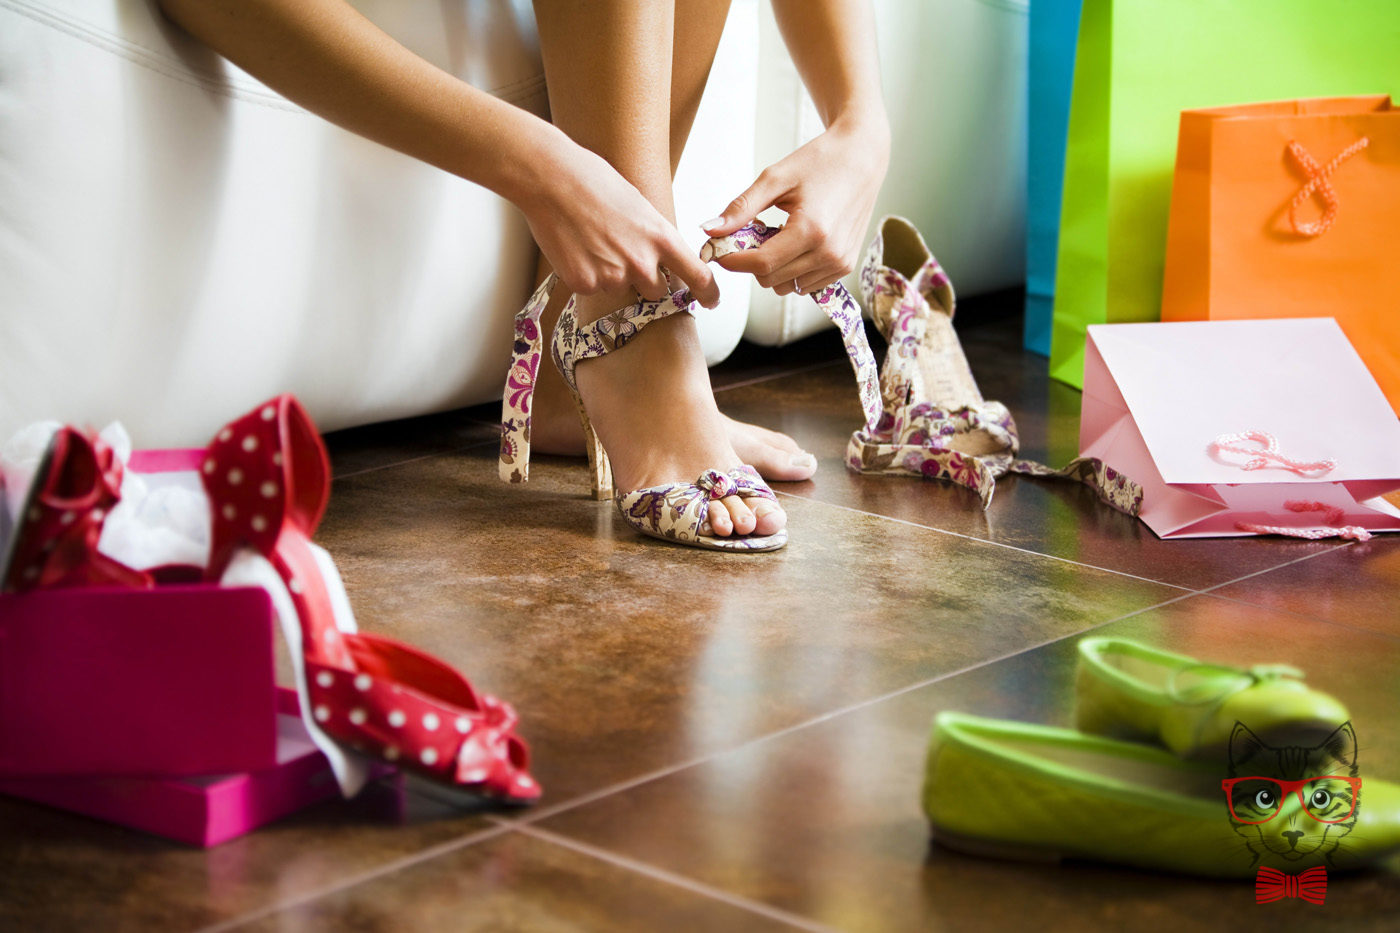 Platform Shoes Very Popular In The 90S Have Once Again Become A Fashion Trend In Recent Years However Their Excessive Use Can Cause Some Health Risks.